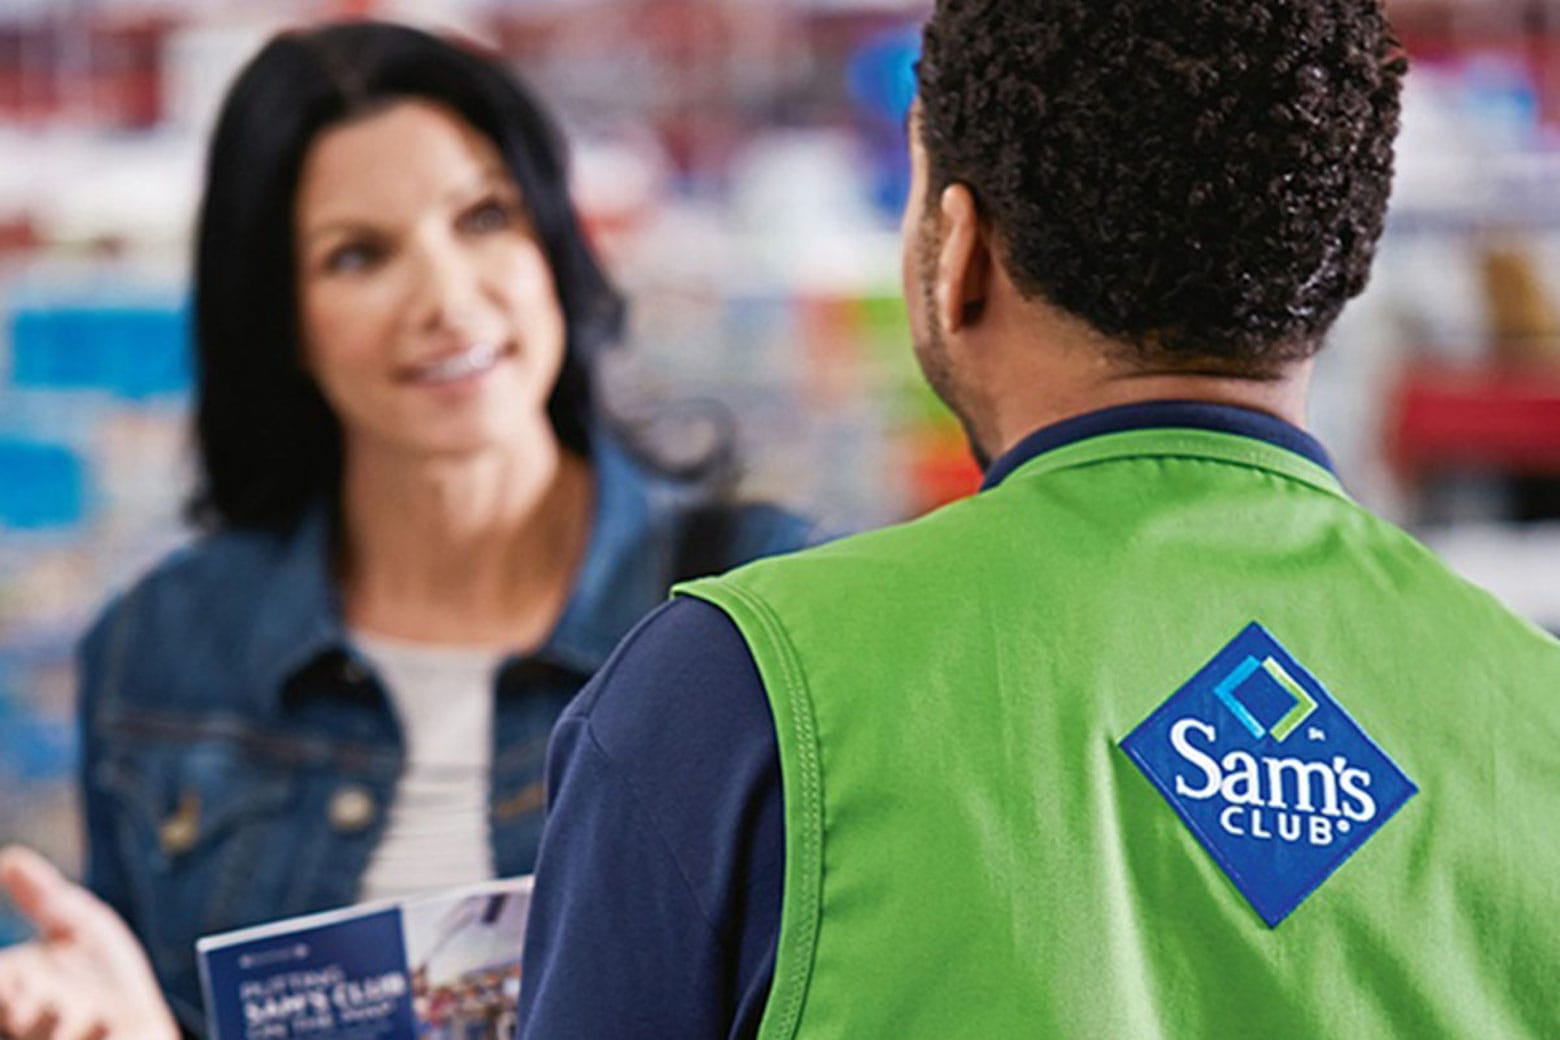 Save on groceries, Apple gear and more with this discount Sam's Club membership